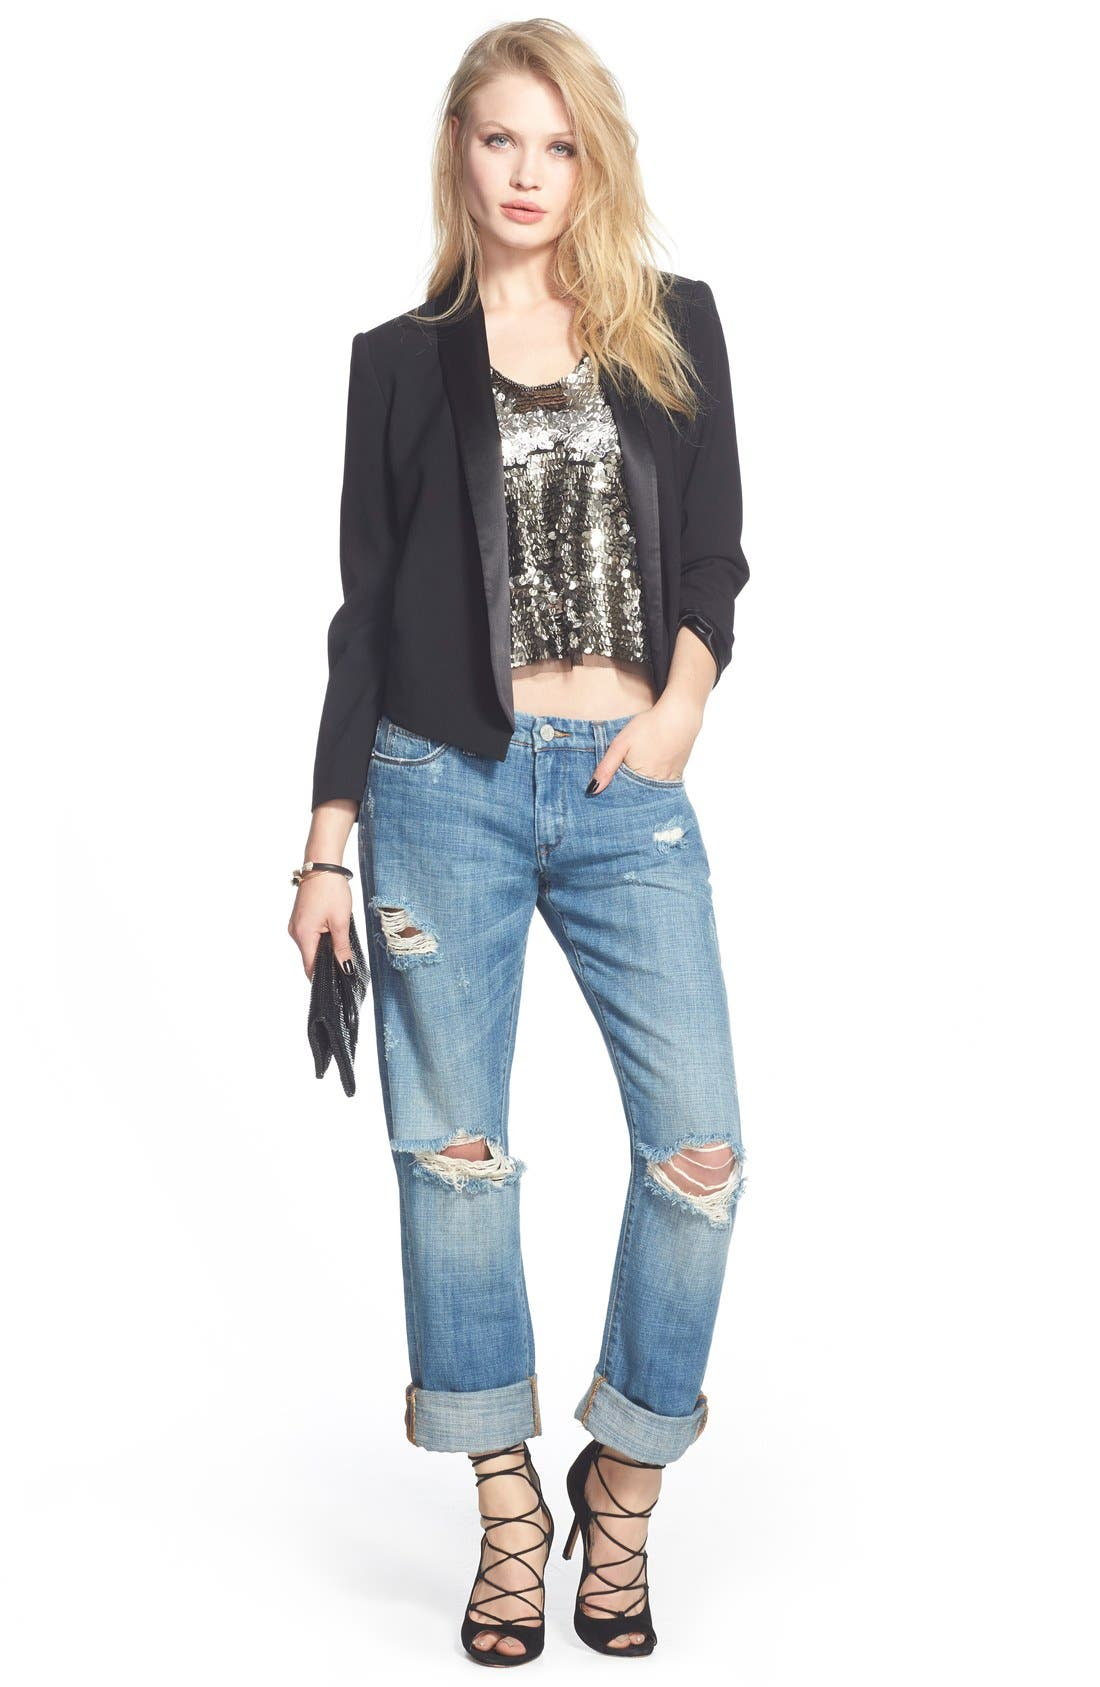 'Meant to Be' High Rise Distressed Boyfriend Jeans,                             Alternate thumbnail 2, color,                             400